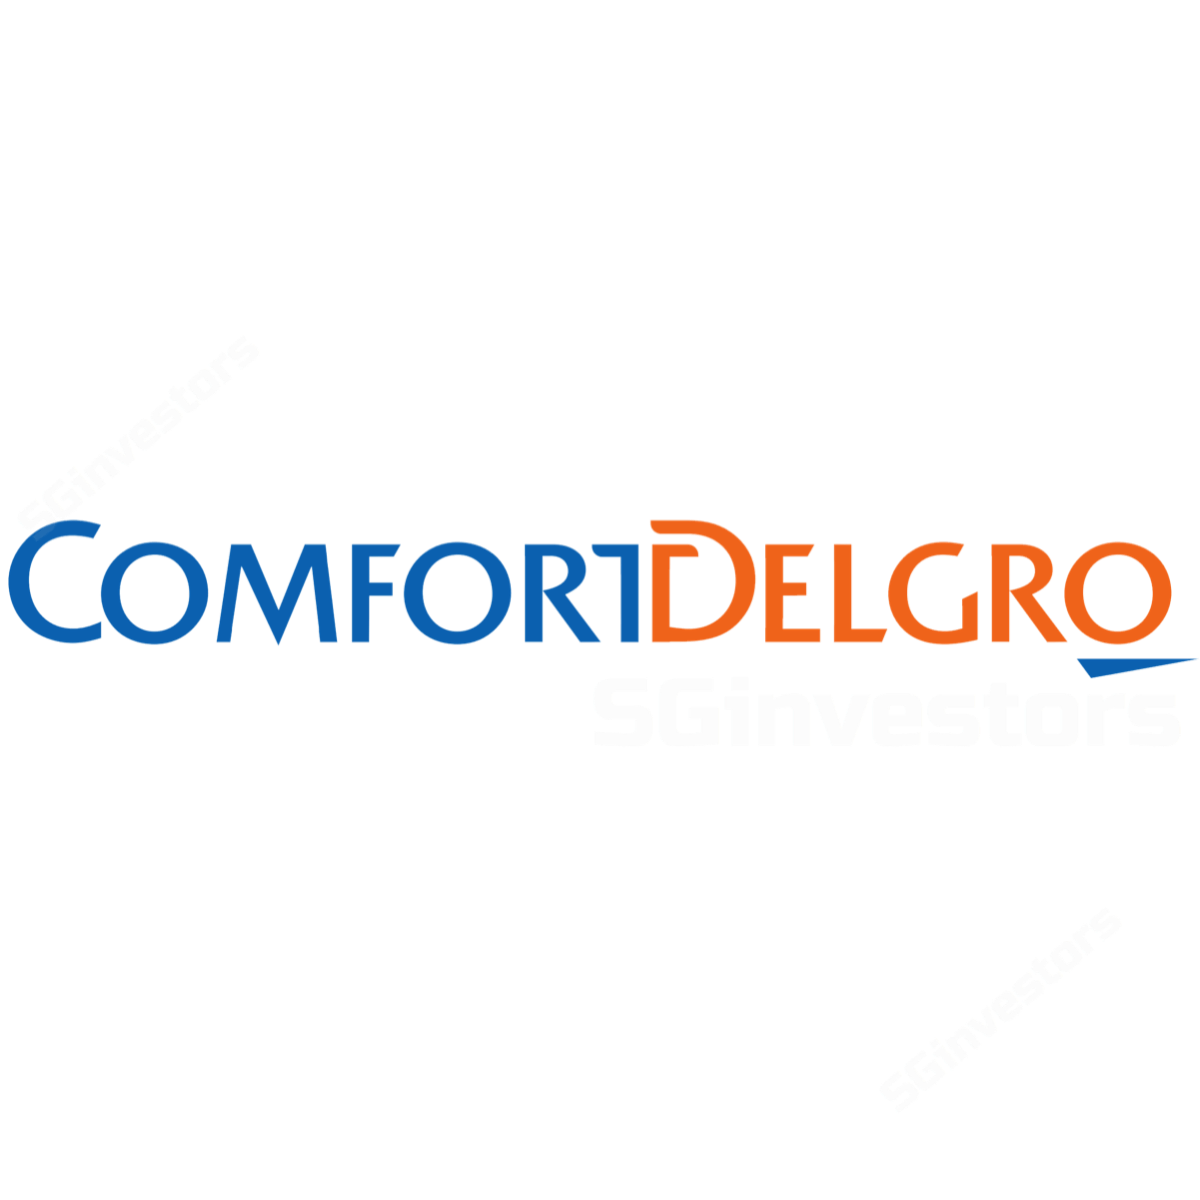 ComfortDelGro Corp Ltd - Phillip Securities 2017-08-14: Oversold And Earnings To Bottom This Year